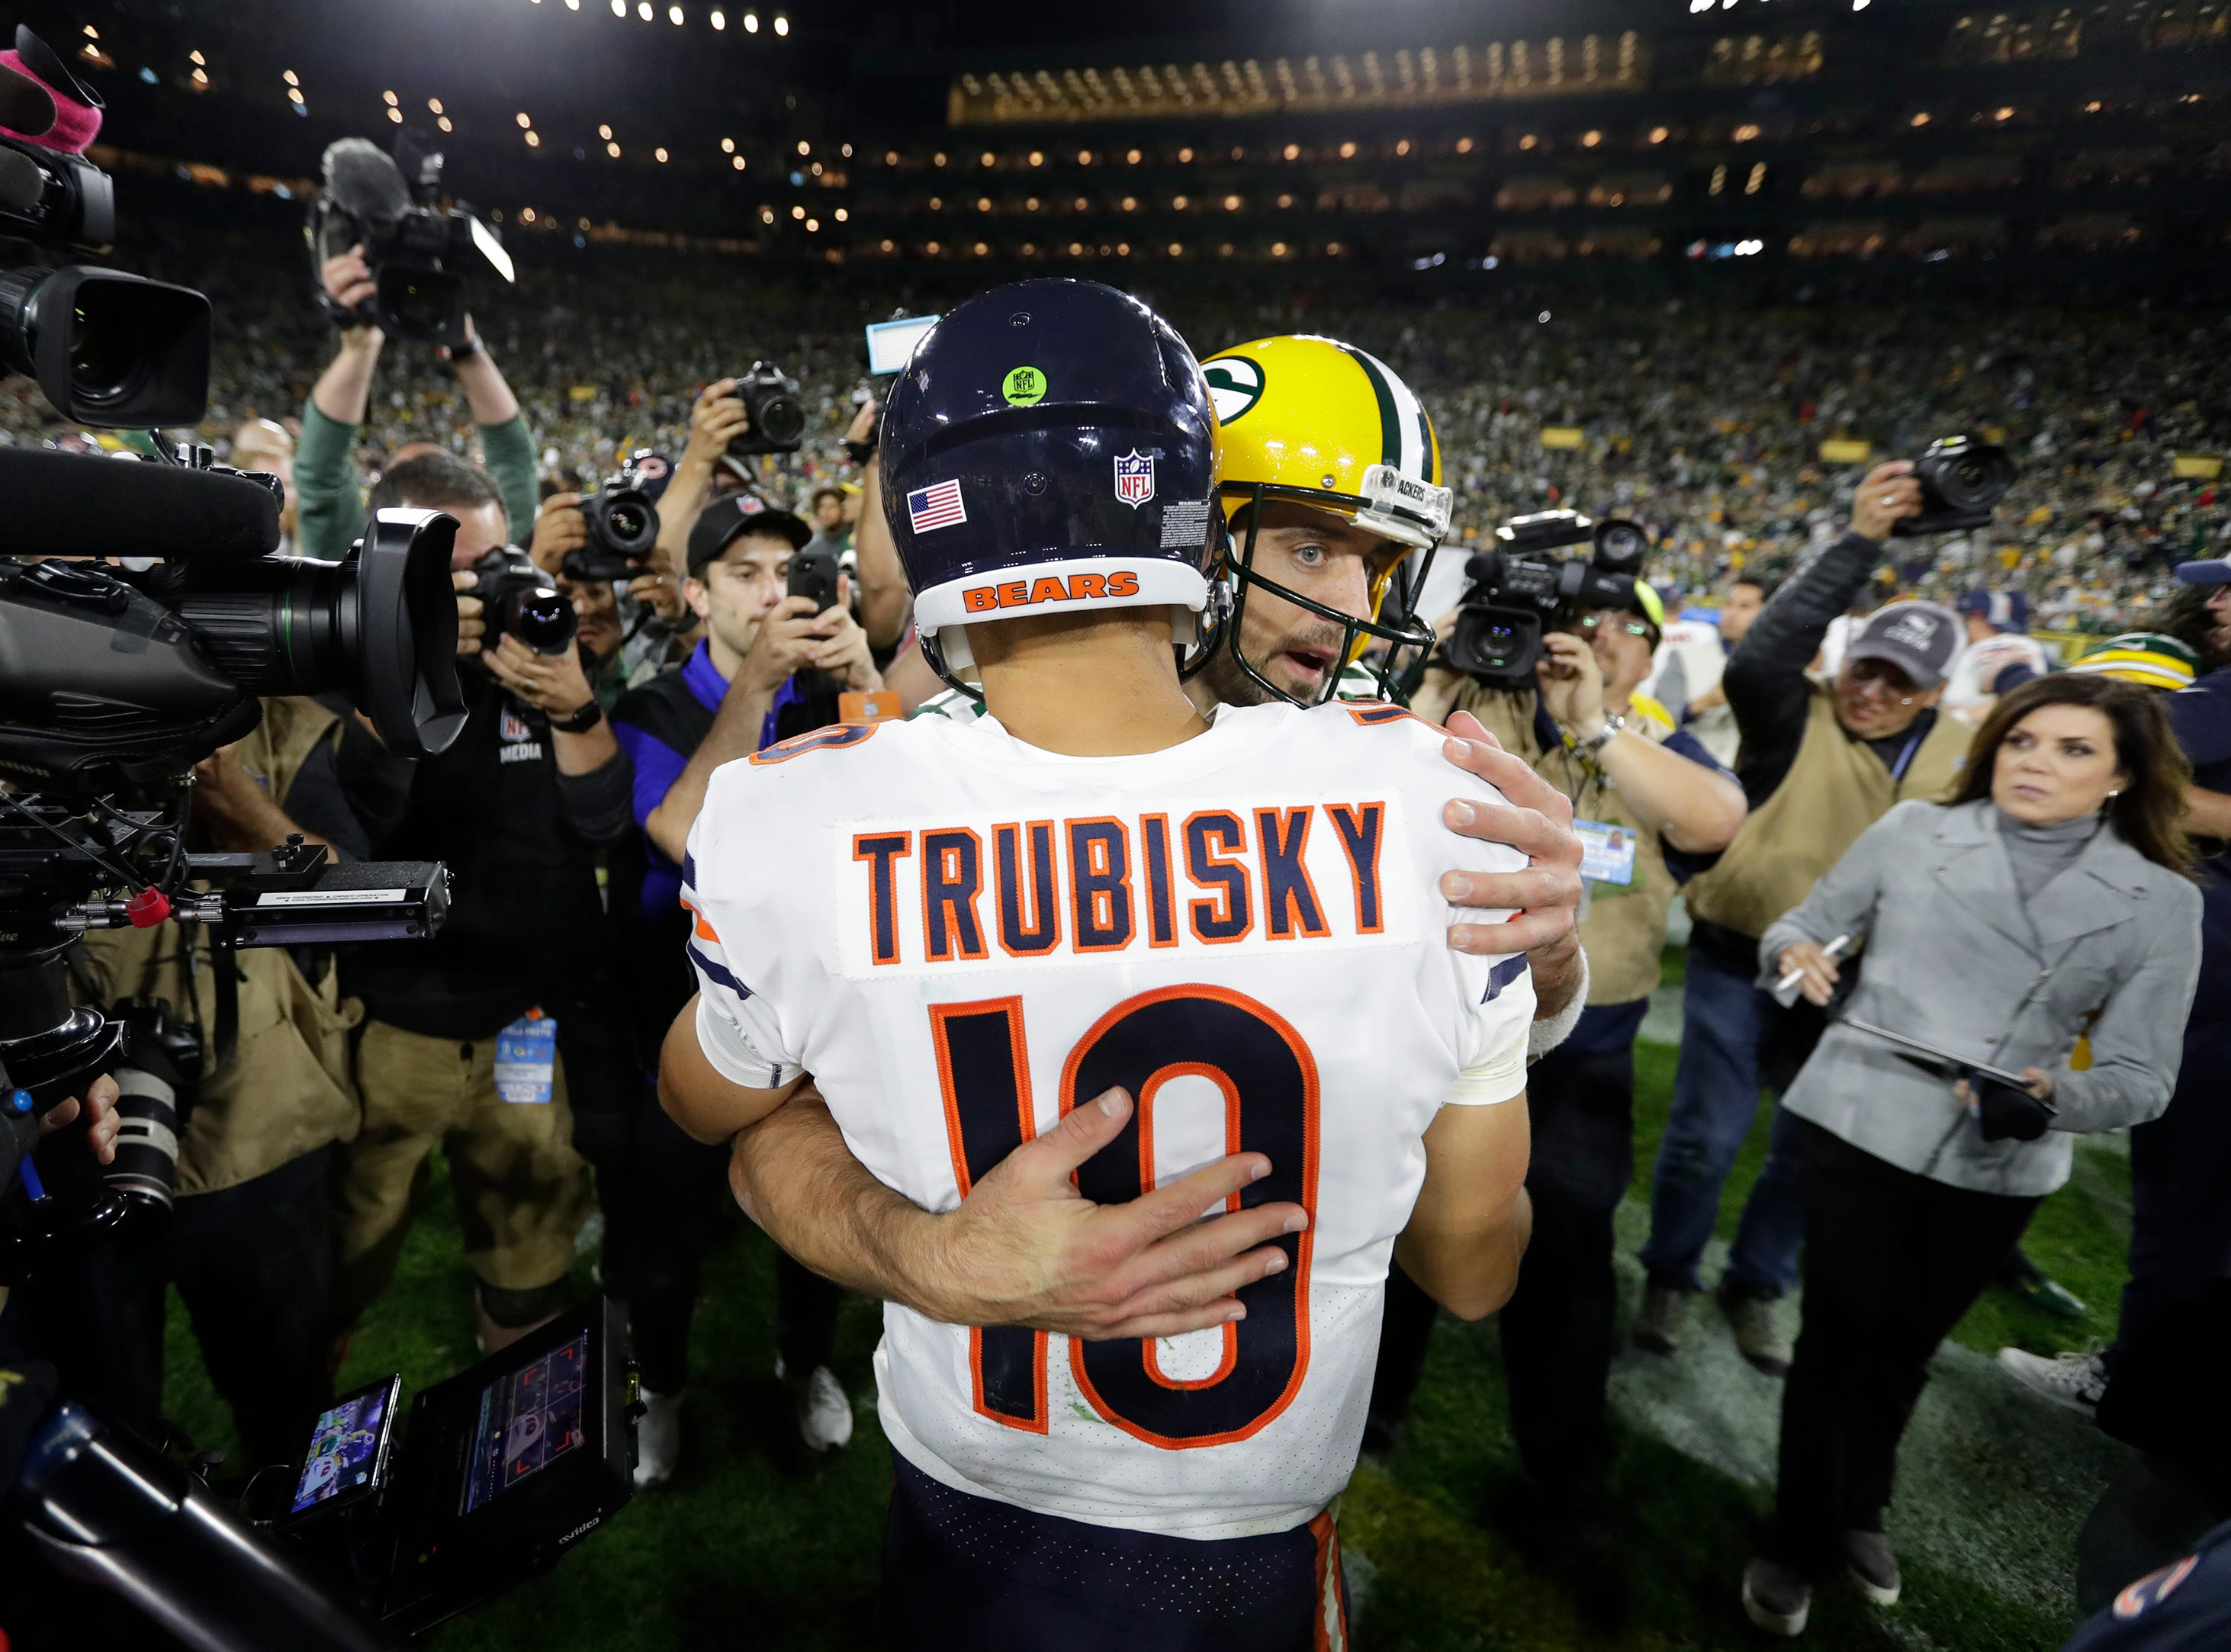 Green Bay Packers quarterback Aaron Rodgers (12) and Chicago Bears quarterback Mitchell Trubisky (10) embrace after the game Sunday, Sept. 9, 2018, at Lambeau Field in Green Bay, Wis. 